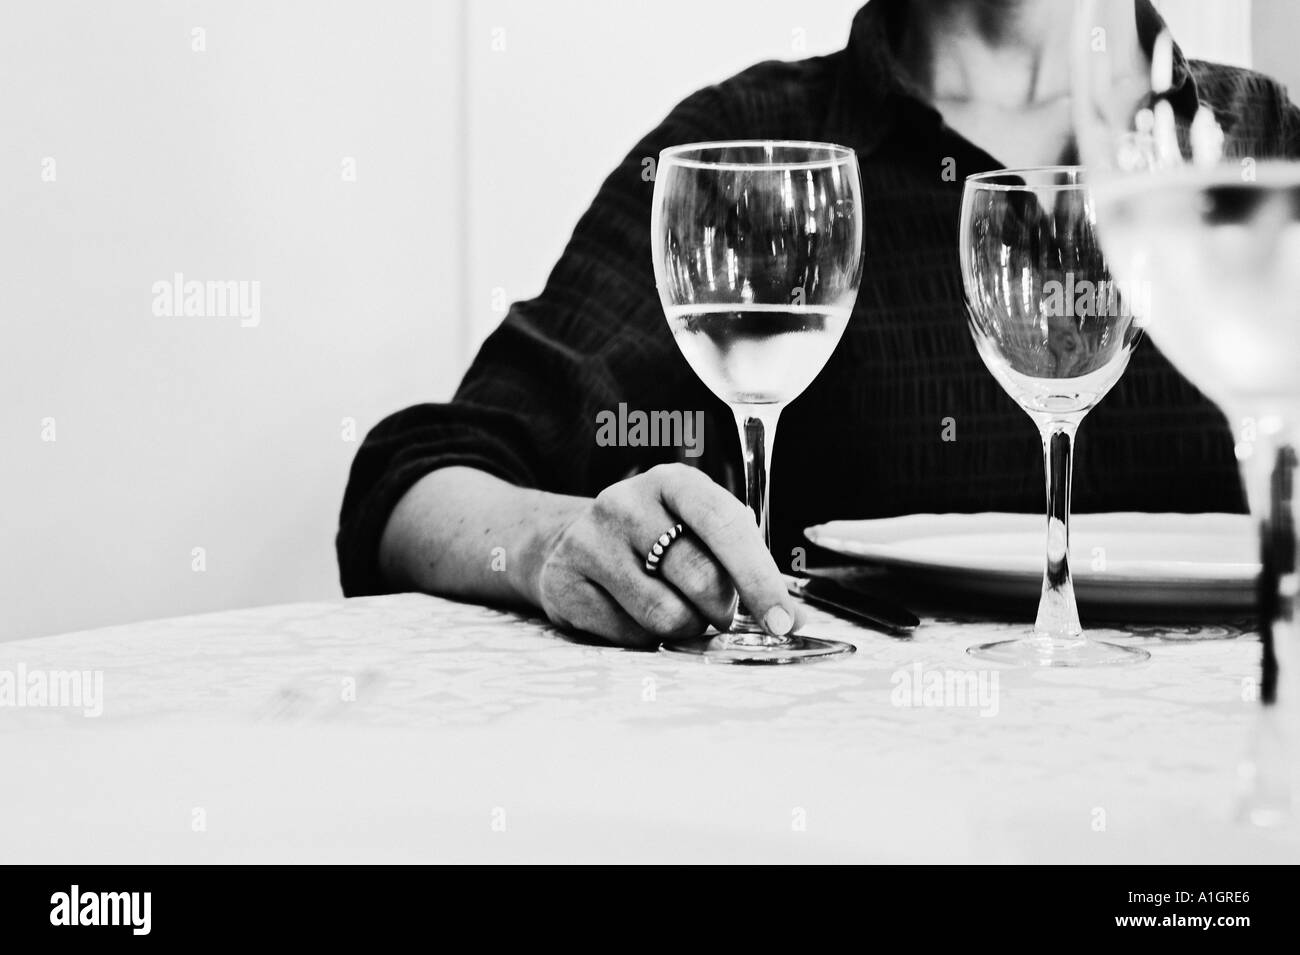 Woman At Dinner Table Holding Glass - Stock Image